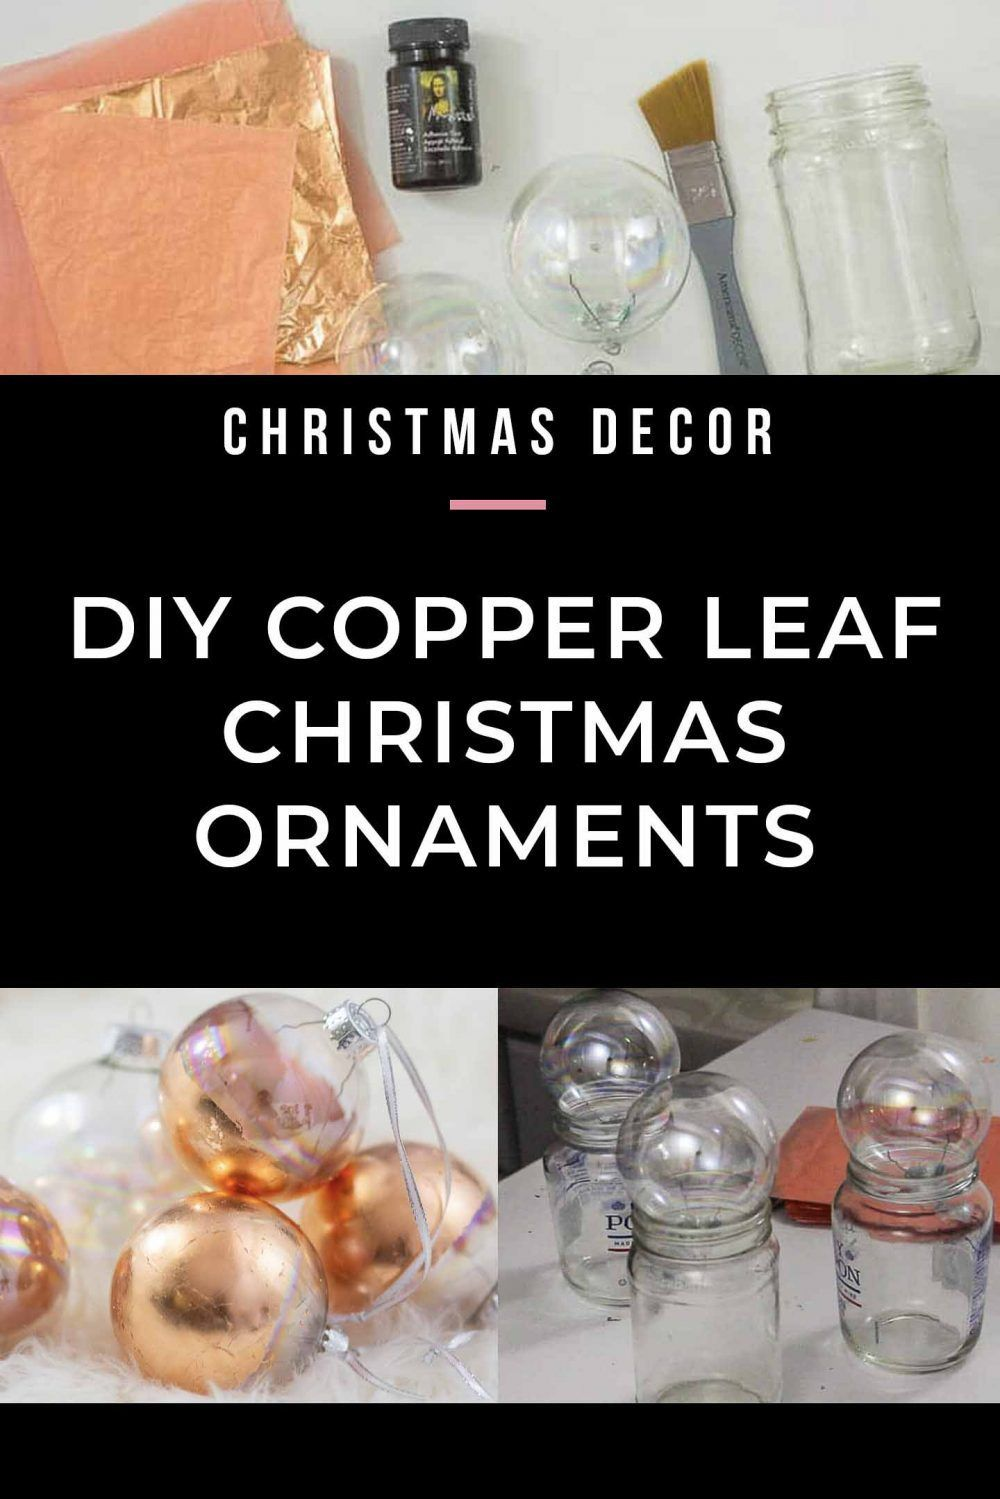 Easy DIY Copper Christmas Ornaments (+ 21 Other Creative Christmas Ideas) These DIY copper Christmas ornaments will add an elegant touch to your Christmas tree decorations this season. Click through to find out how easy they are to make, even if you are on a budget.